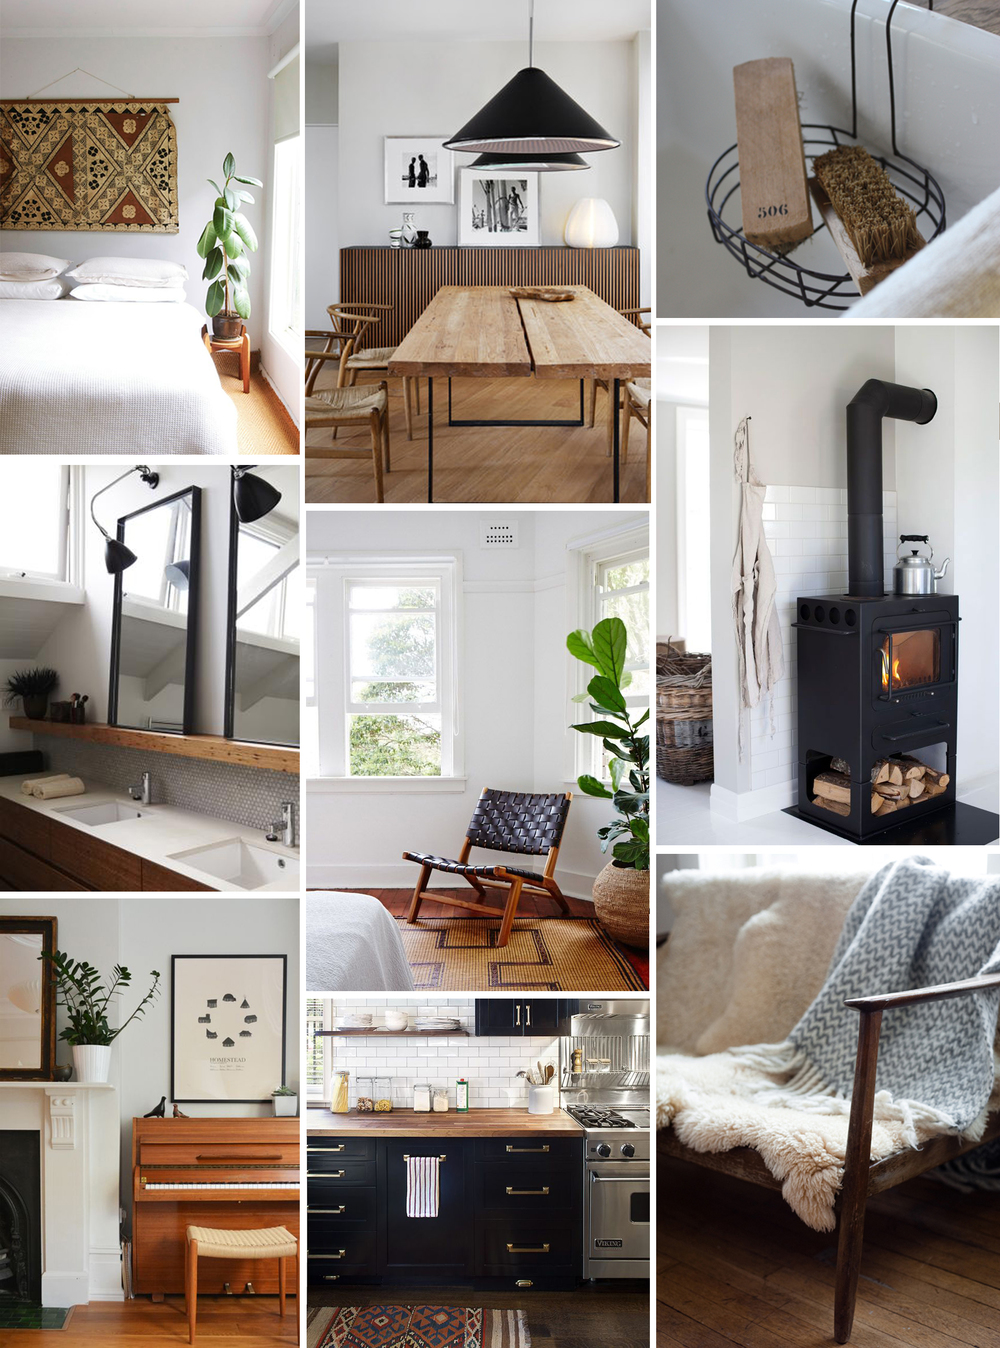 pins from my 'home' board on pinterest